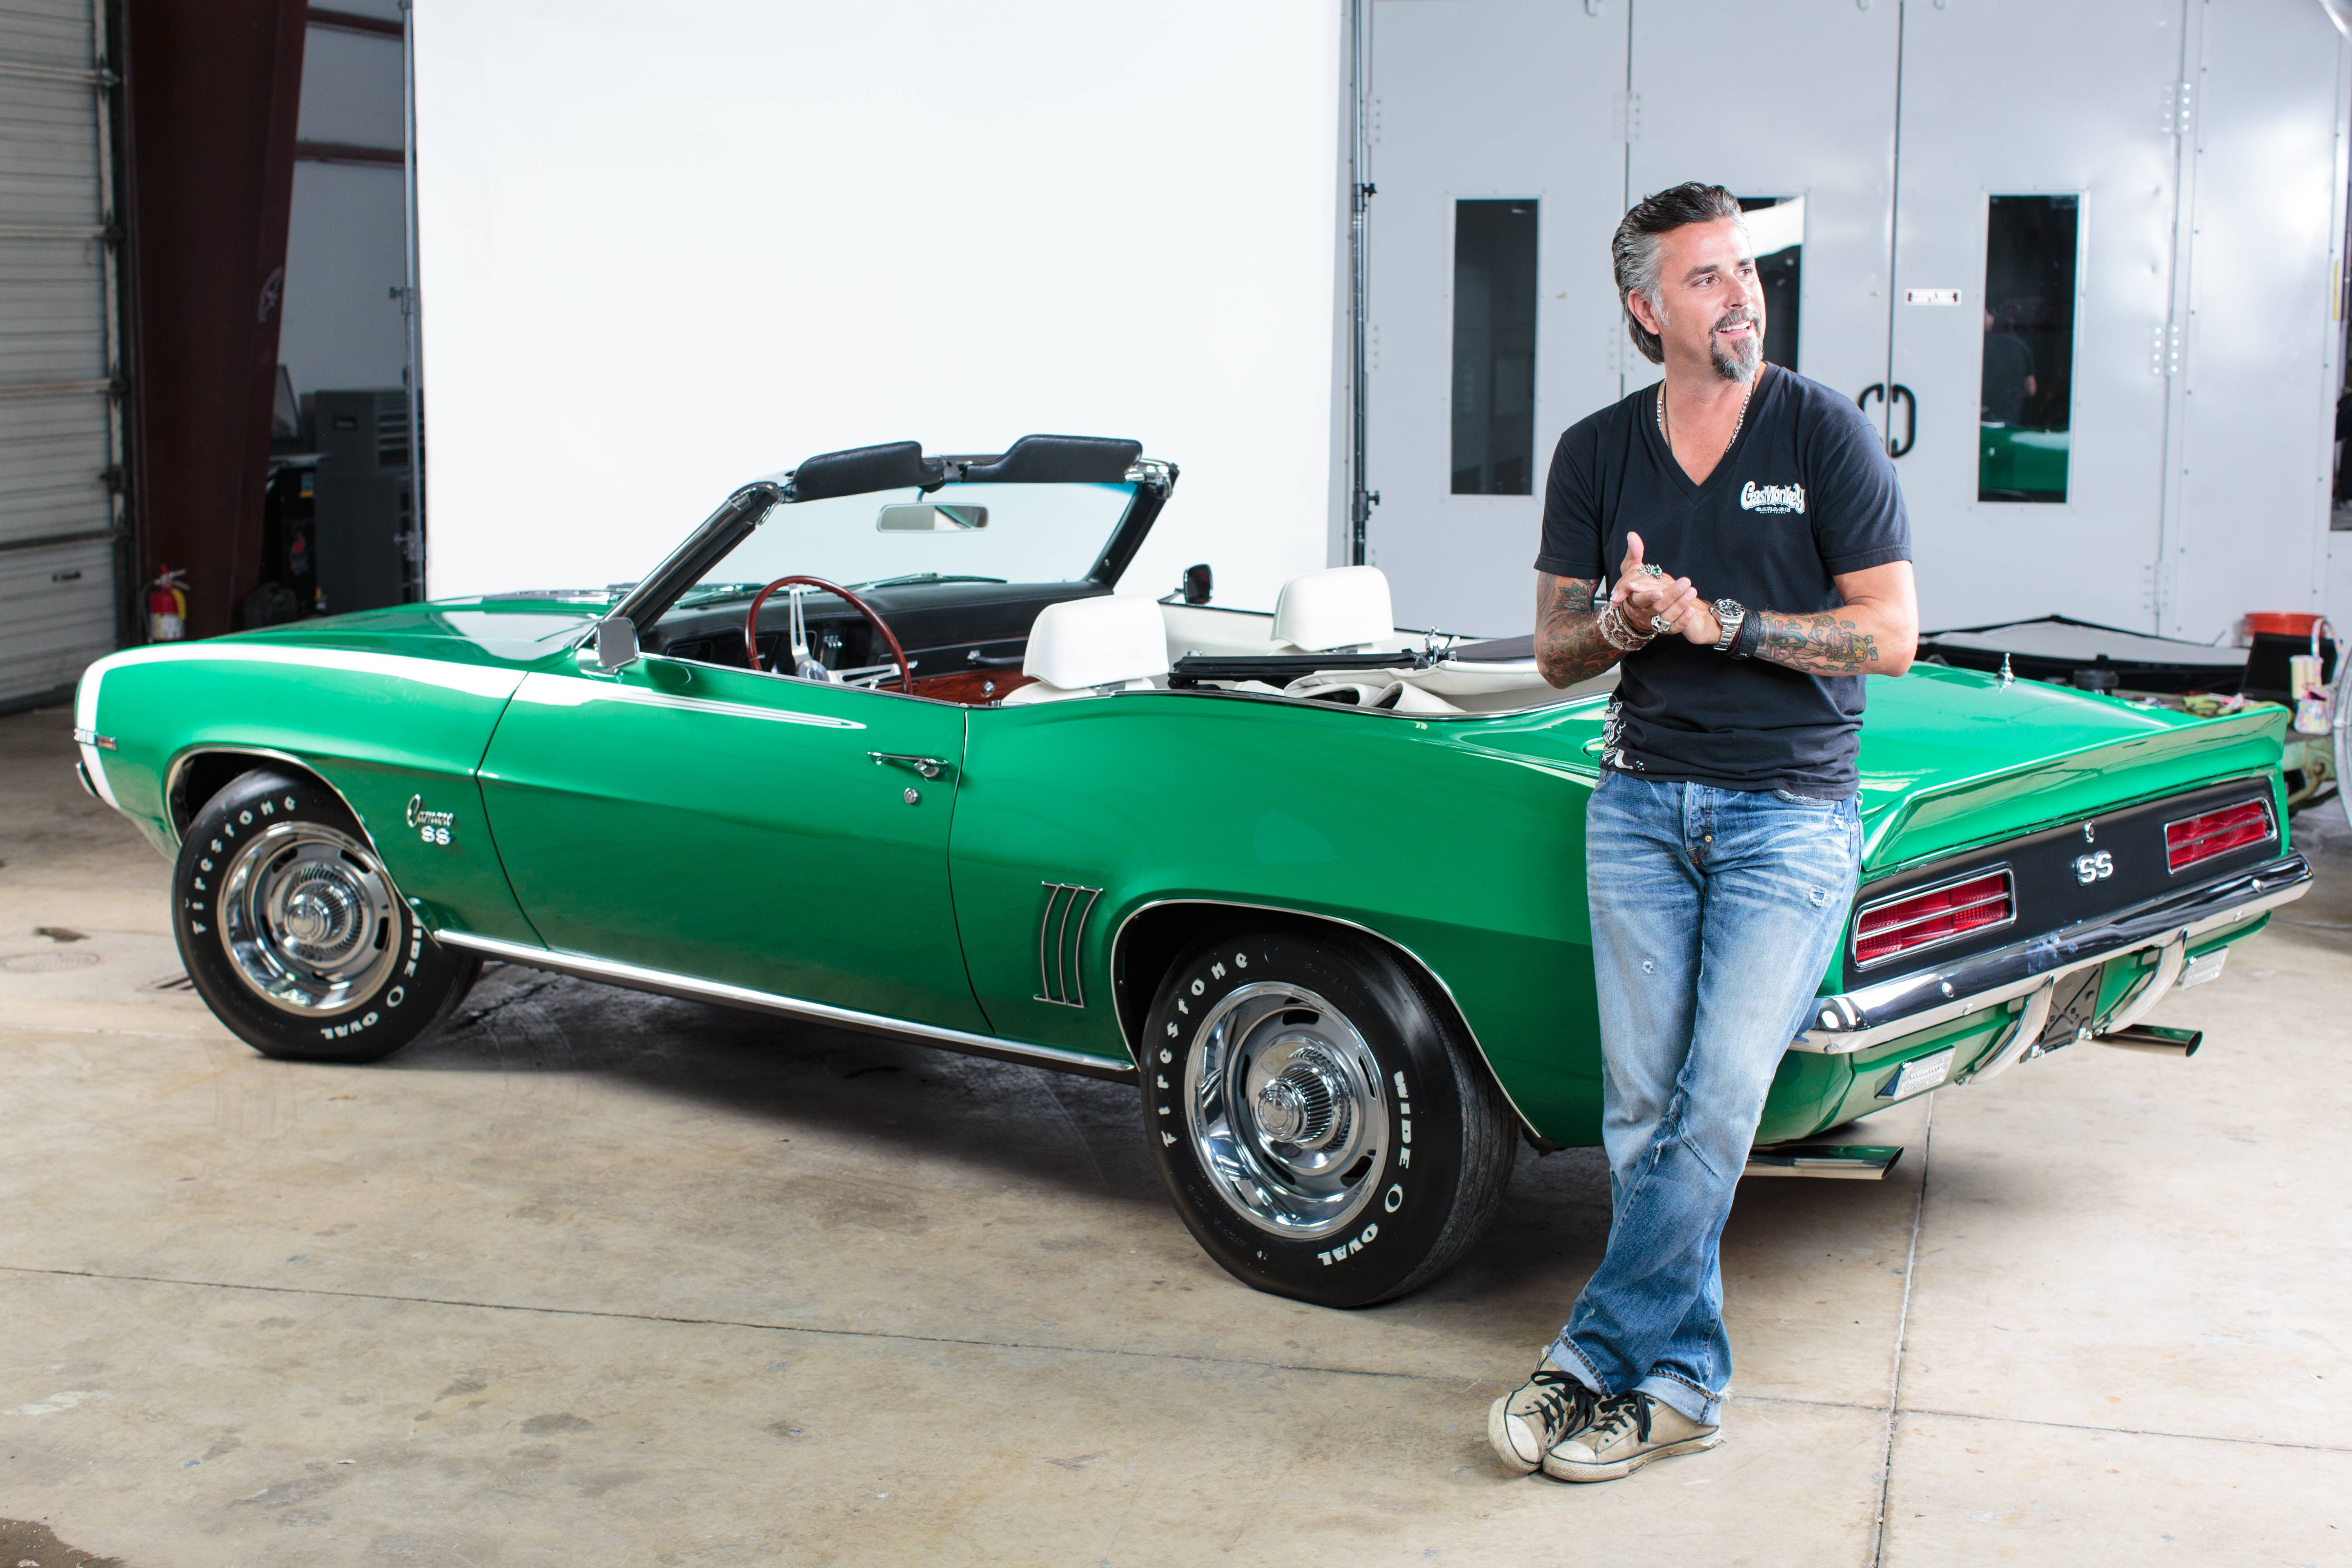 Gas Monkey Richard Rawlings gives peek under the hood of new Fast N